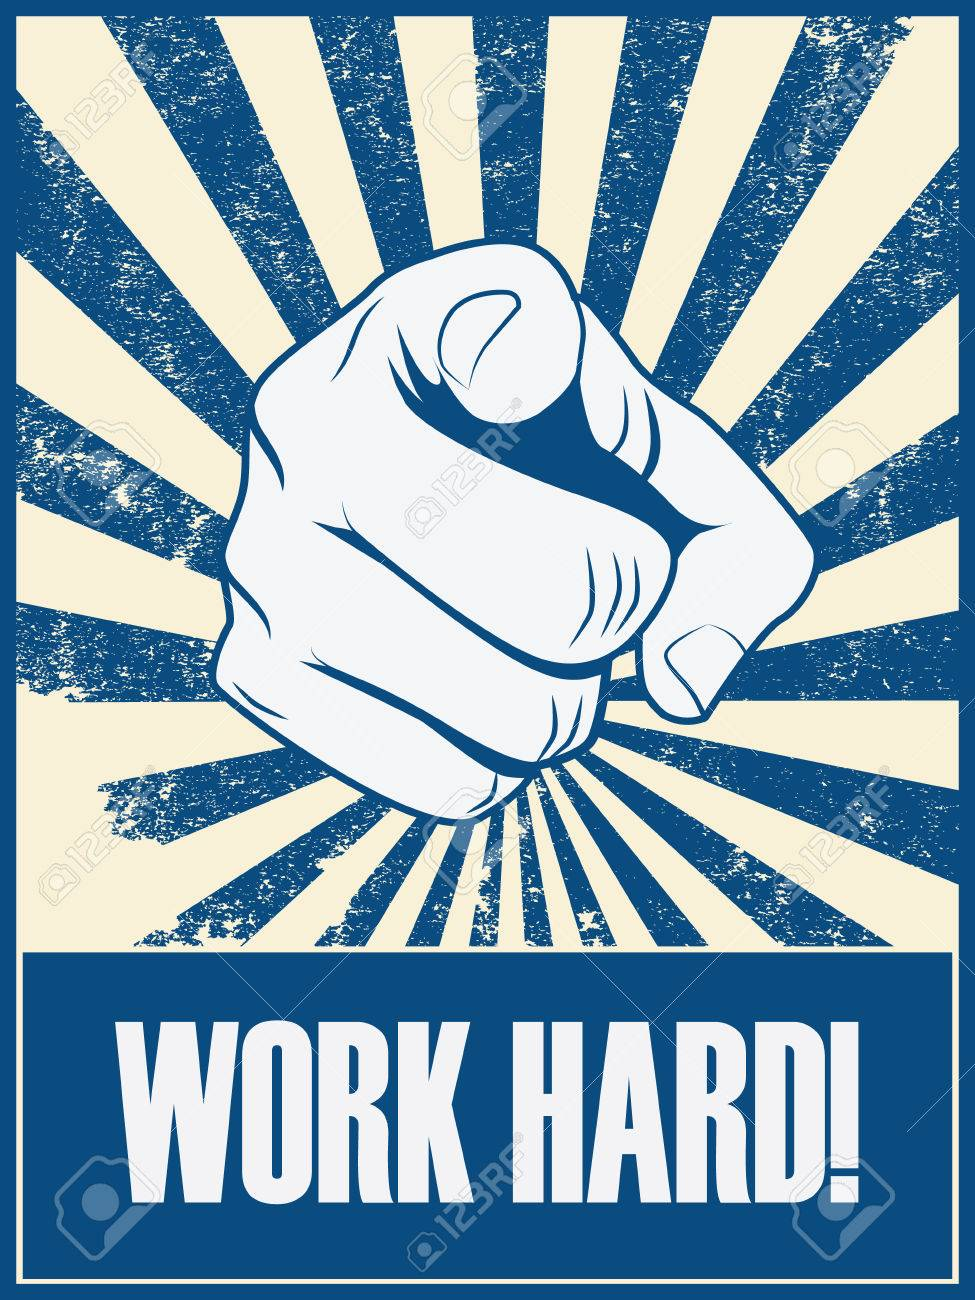 work hard motivational poster vector background with hand and